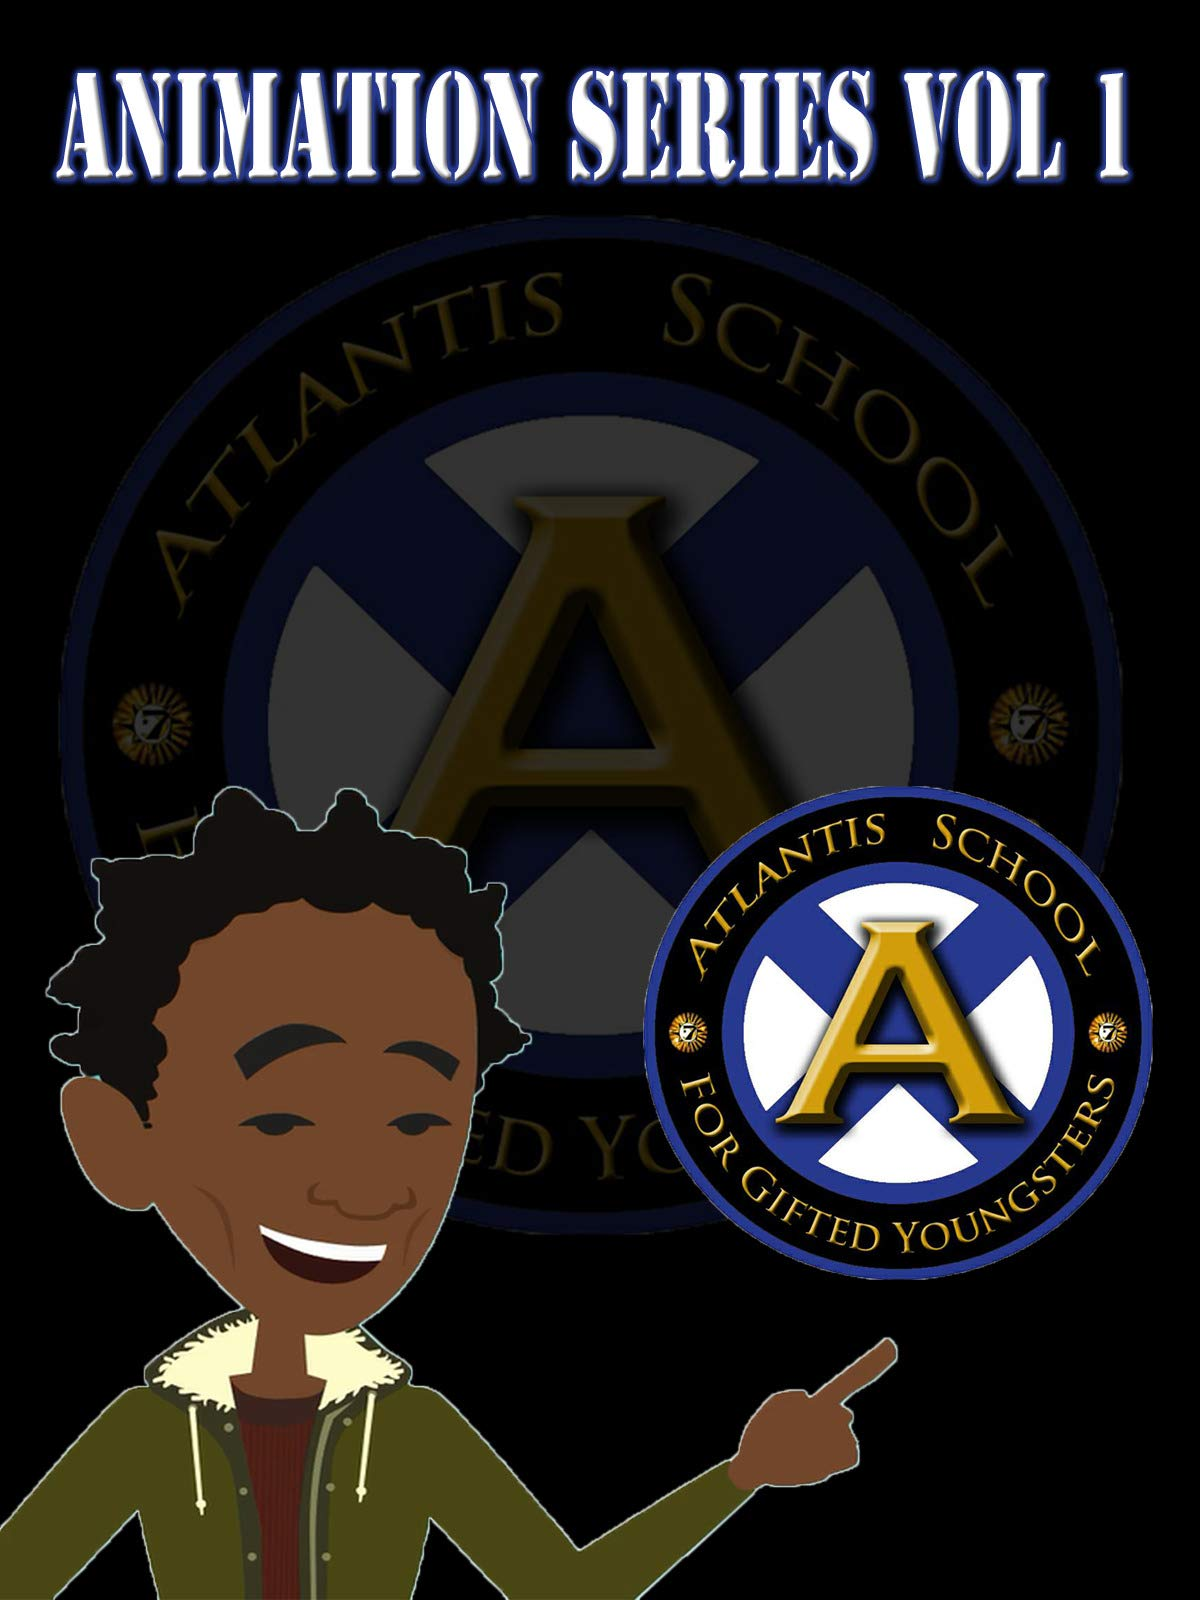 Atlantis School For Gifted Youngsters Animation Series Vol 1